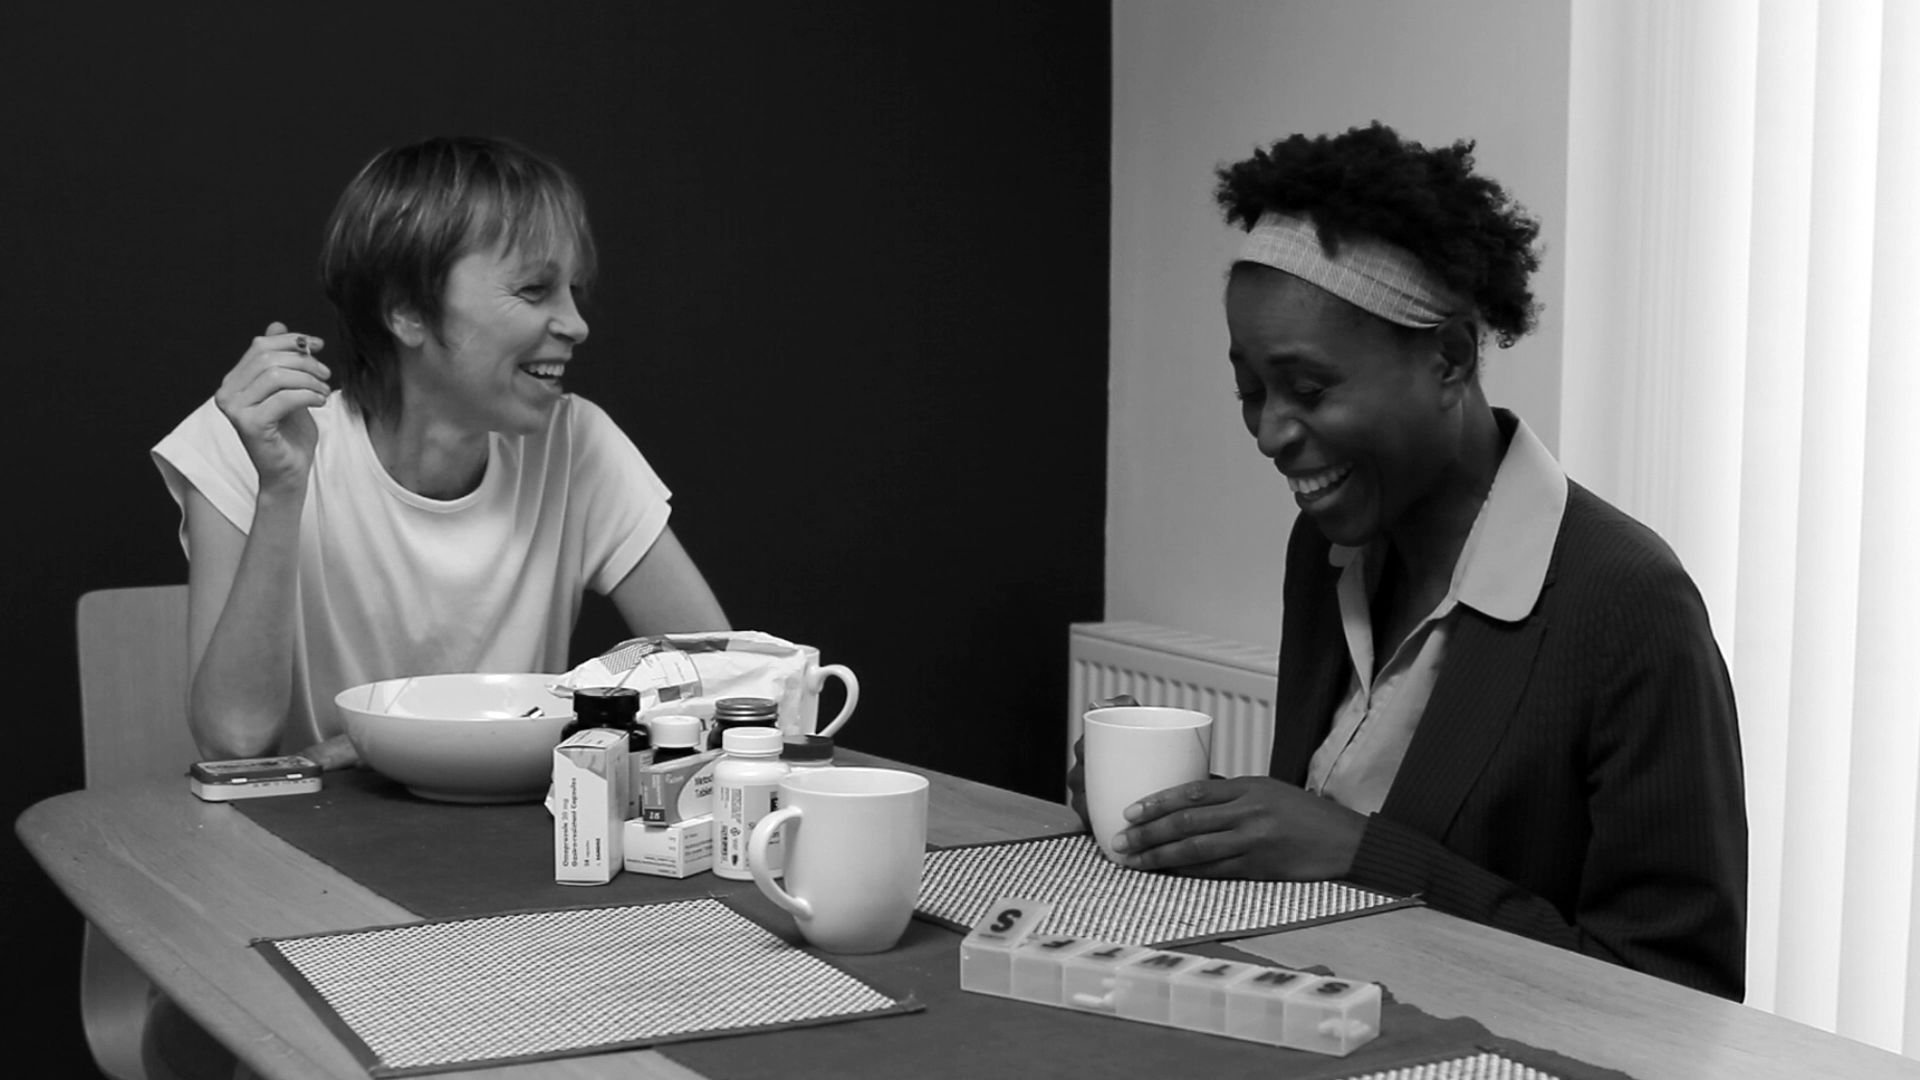 Awake still: two women, one white and one black, laugh over coffee. The white woman holds a joint in her hand.